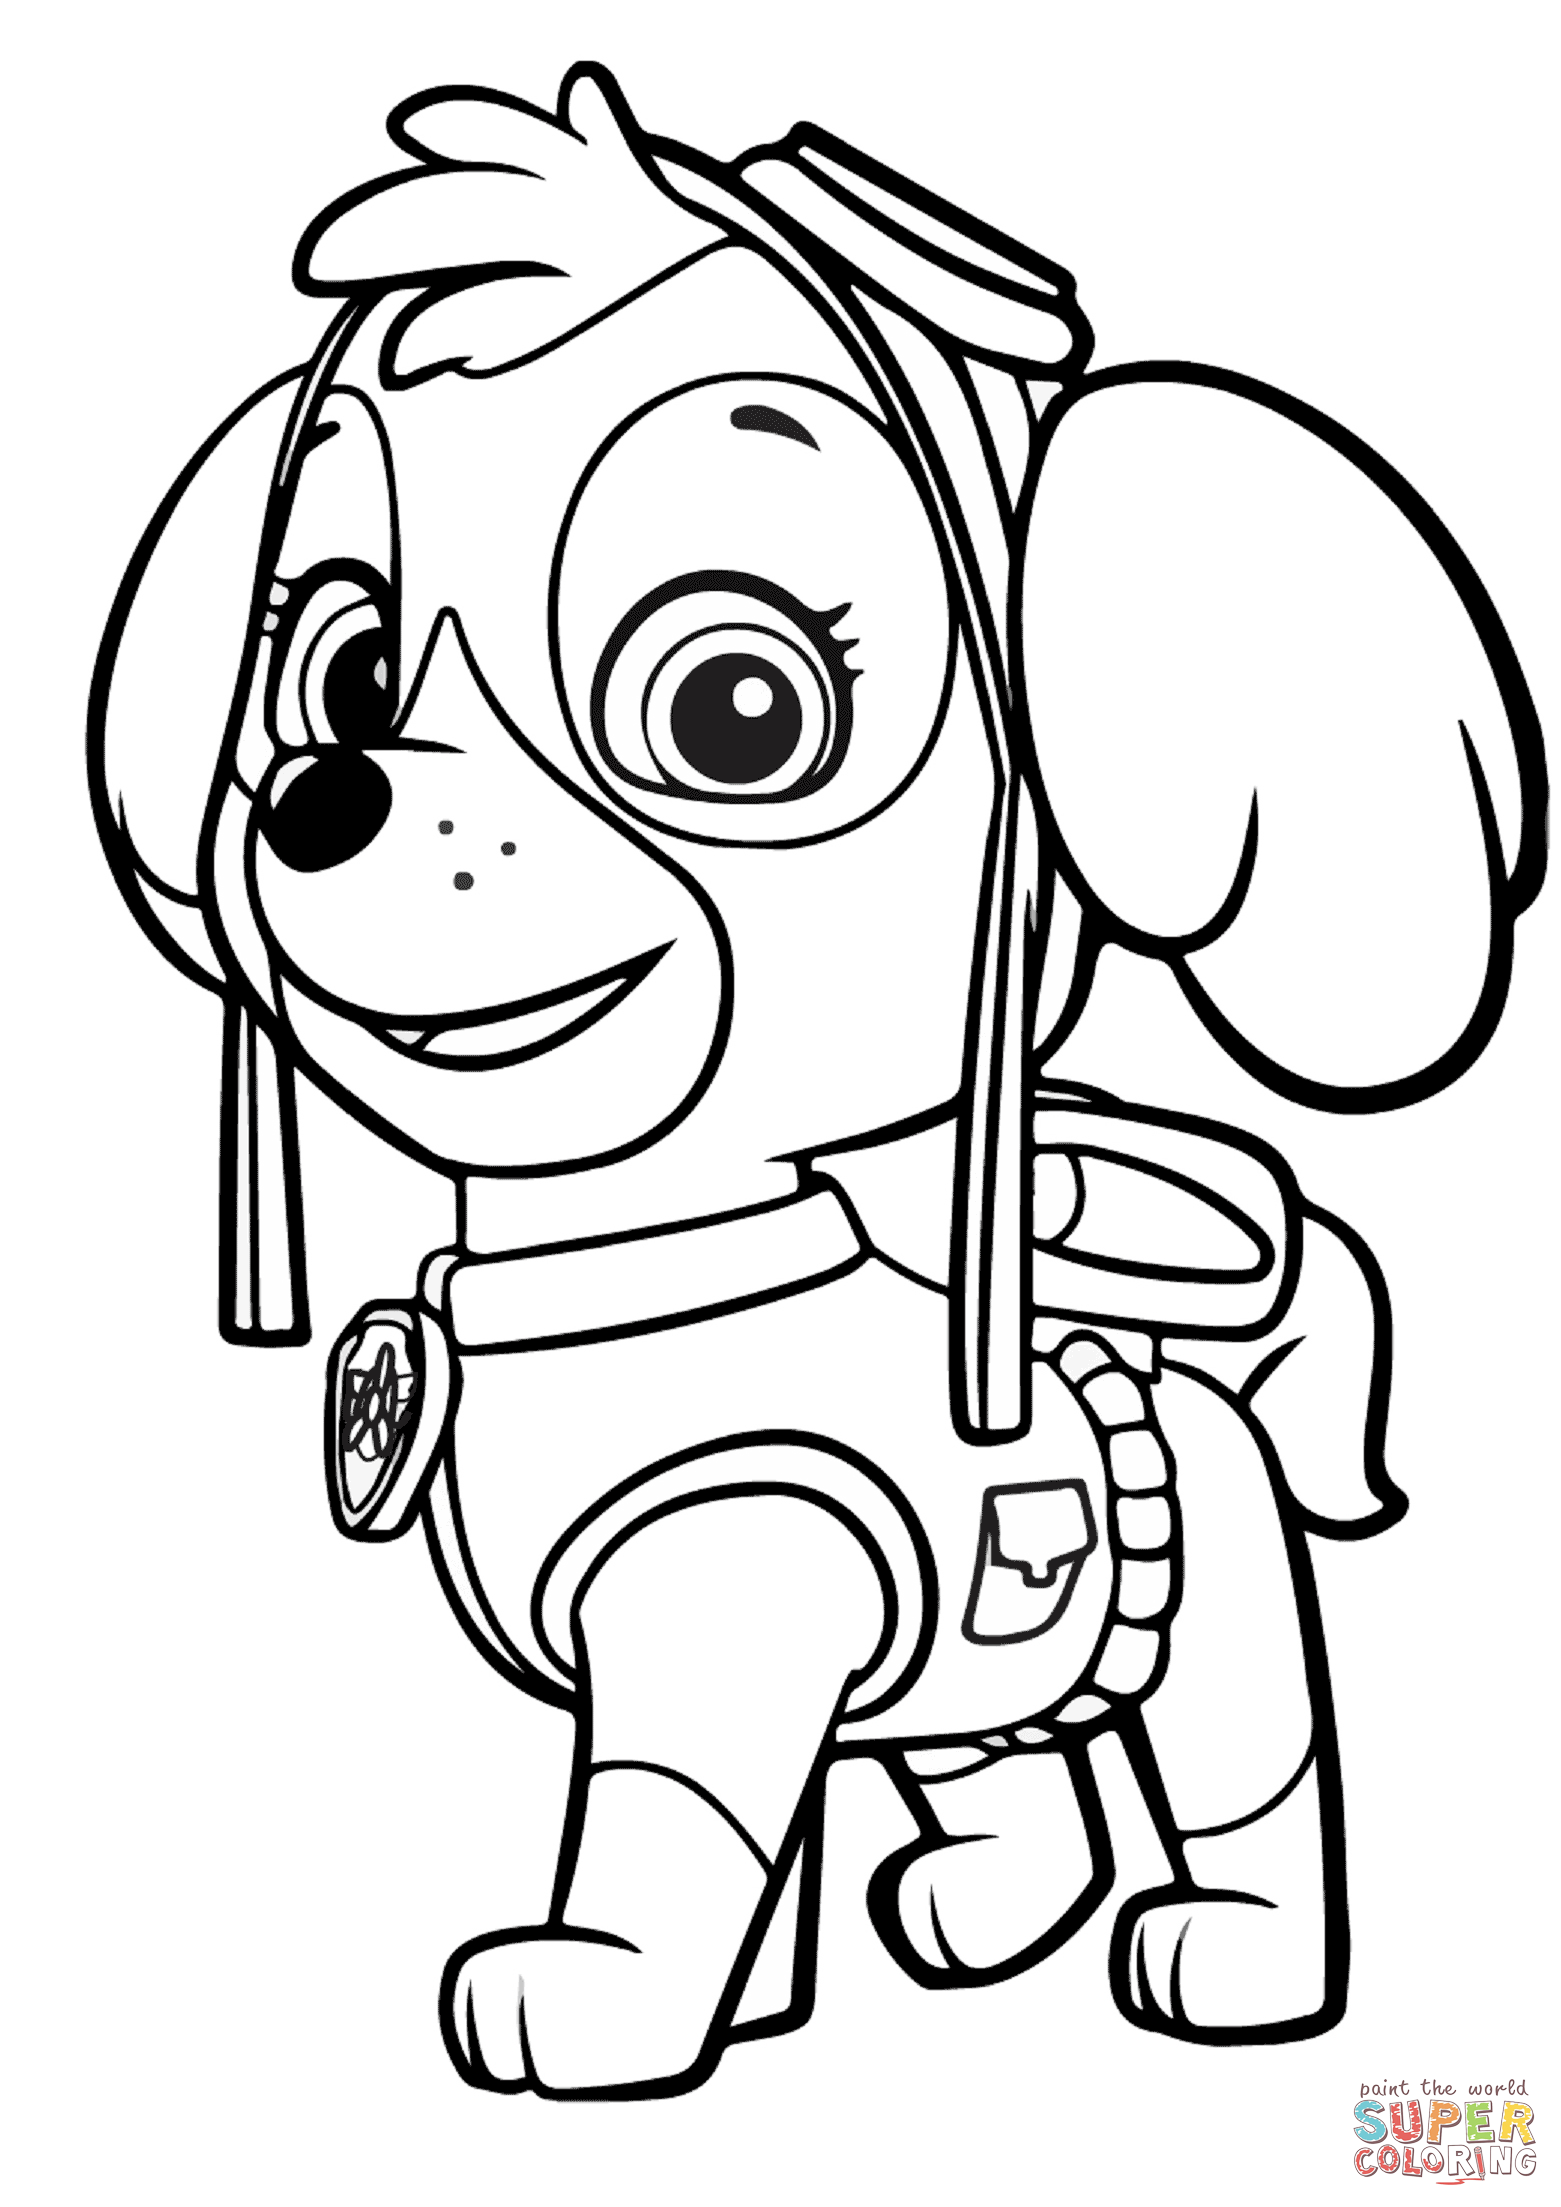 1561x2207 Paw Patrol Skye Coloring Page Free Printable Coloring Pages